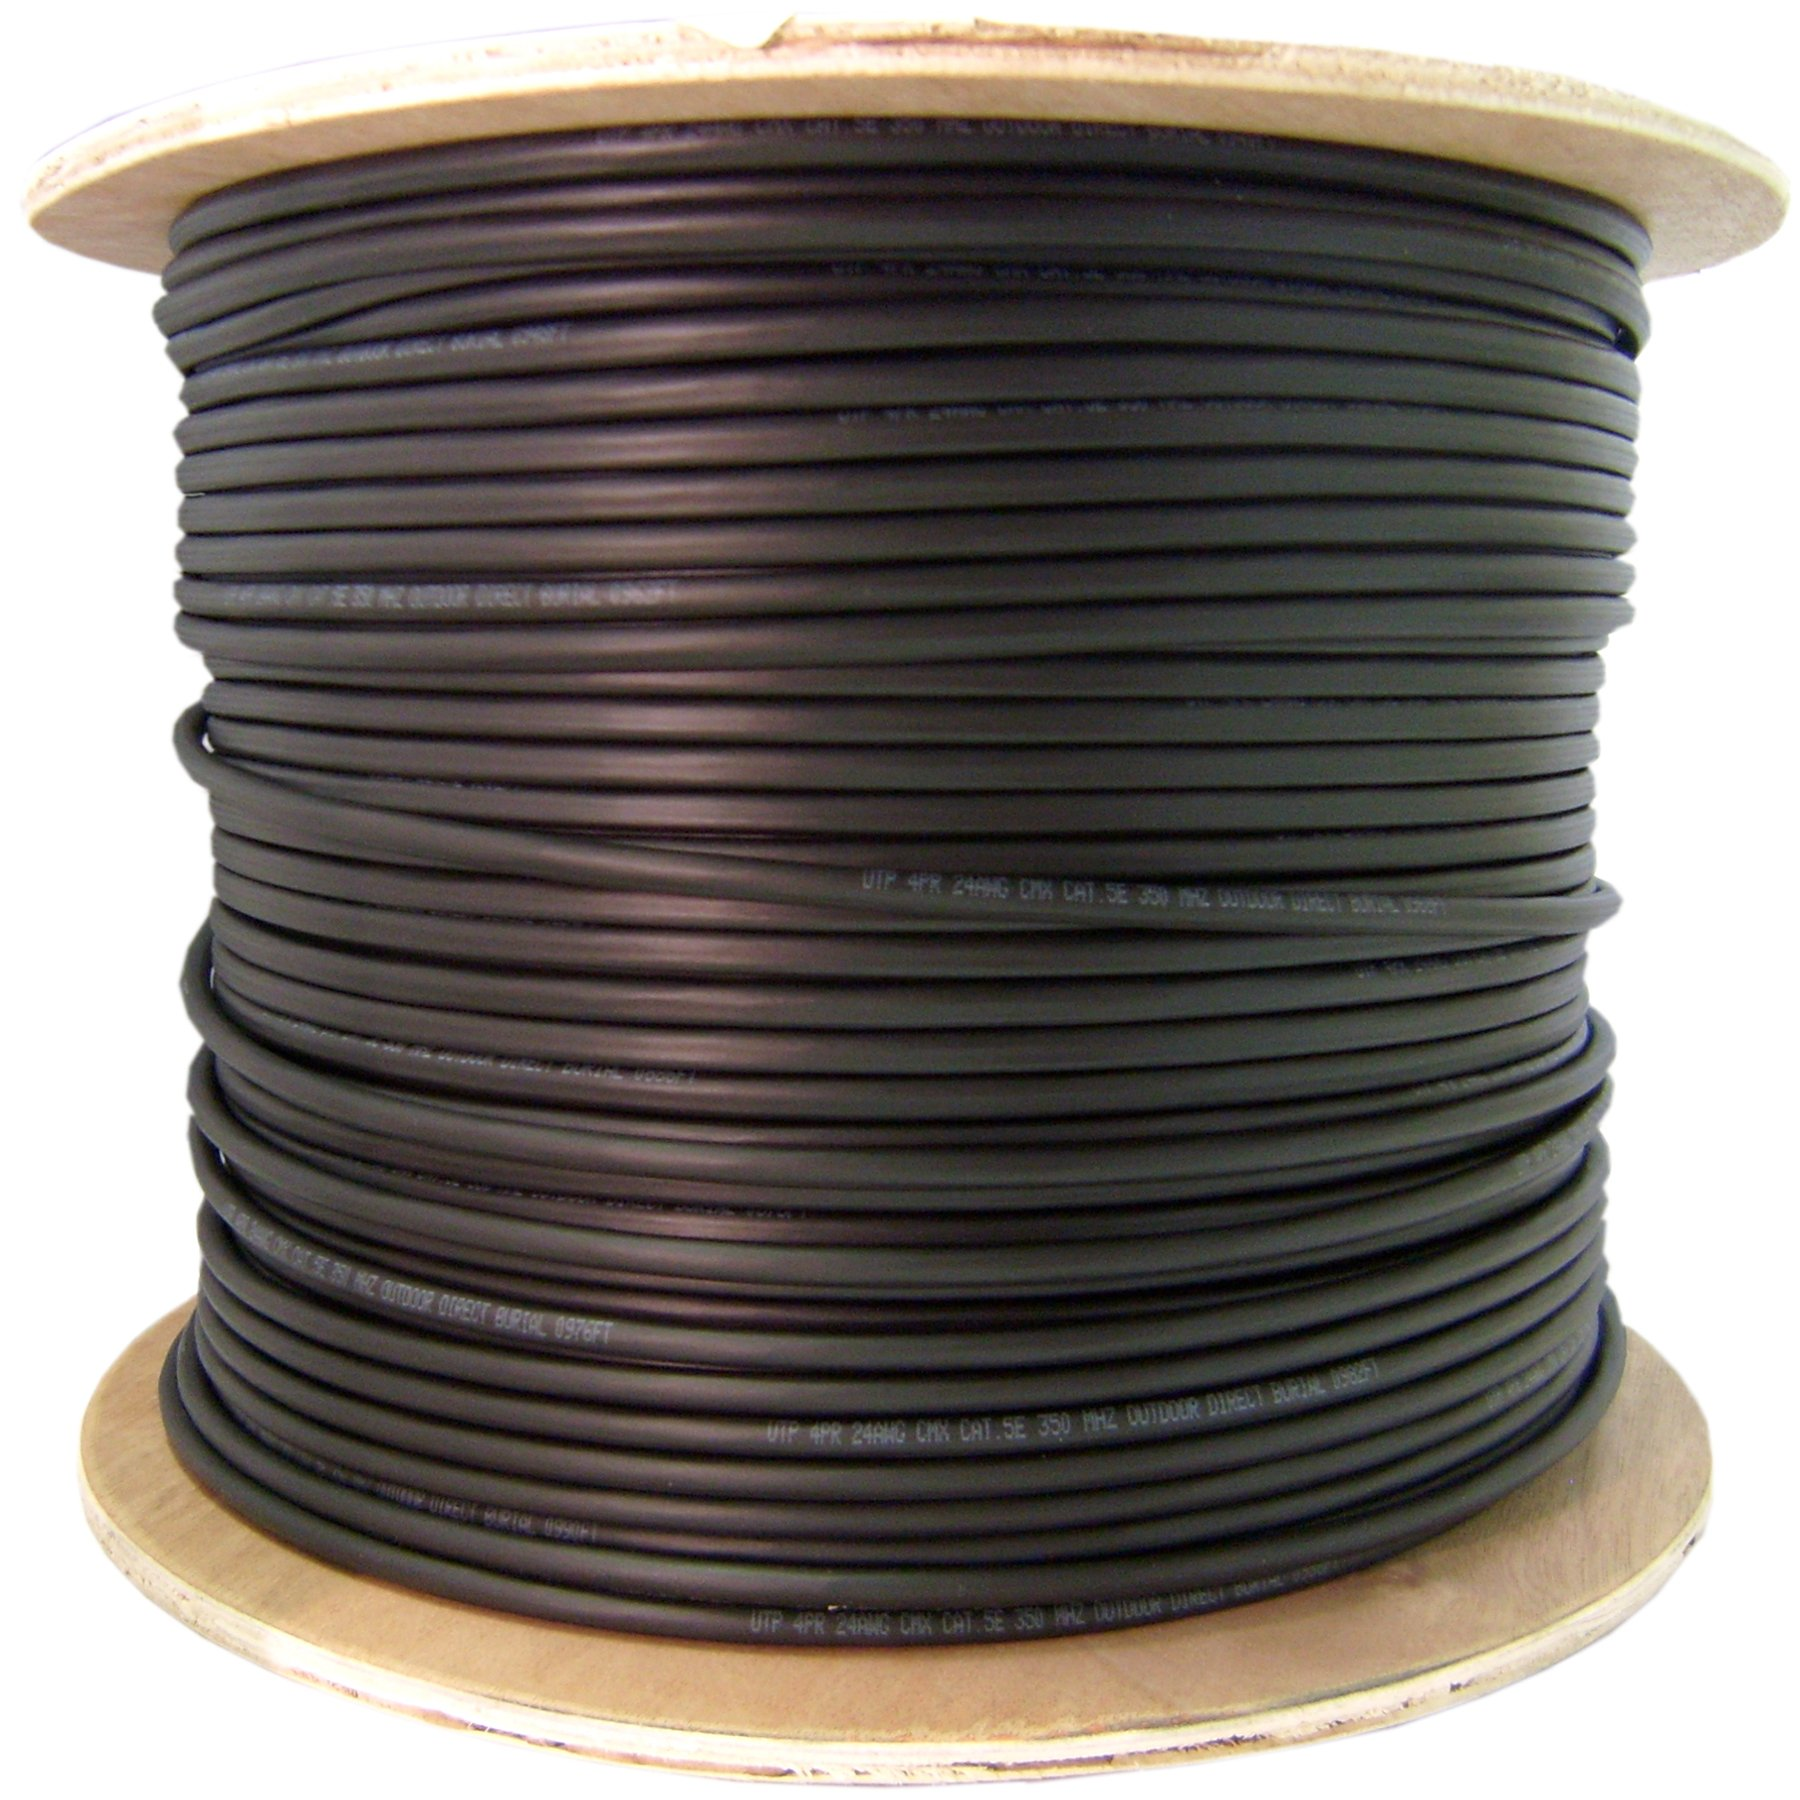 Solid Waterproof Tape 1000 Foot Direct Burial//Outdoor Rated Cat5e Black Ethernet Cable Spool CMX 24 AWG